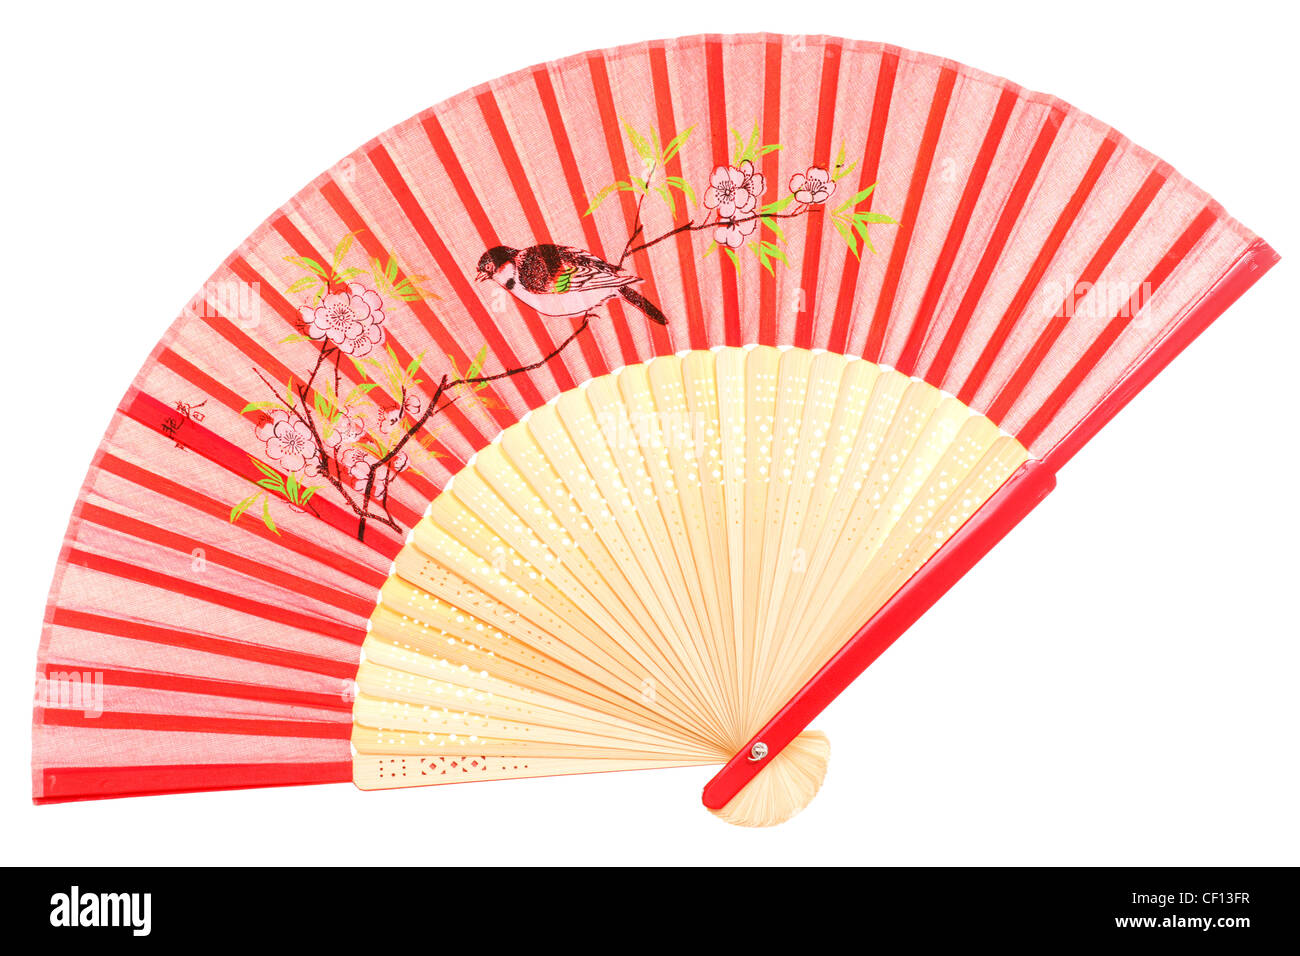 Chinese Fan On Red Background Stock Photos & Chinese Fan On Red ...